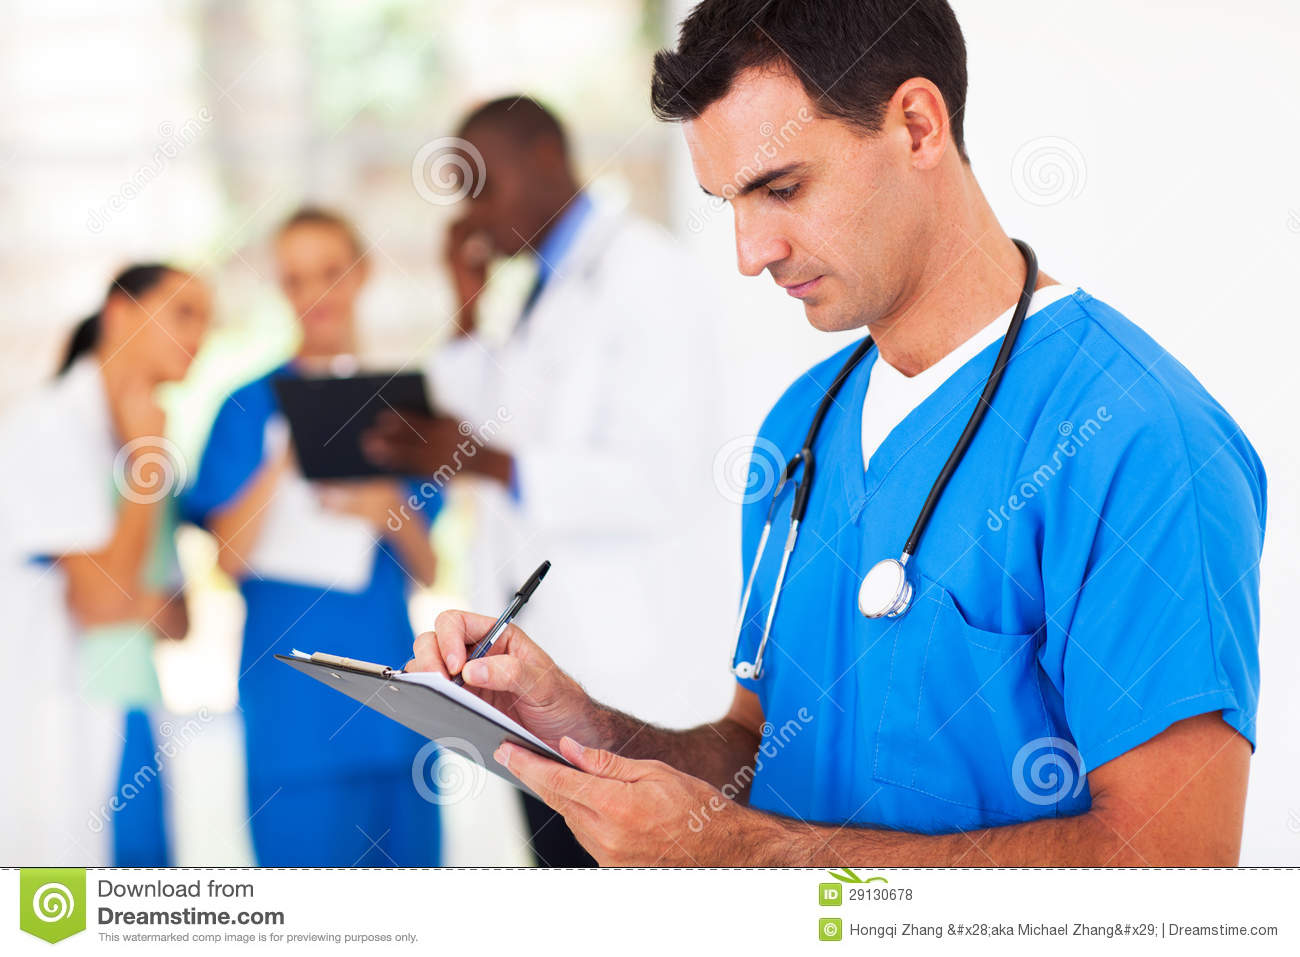 Medical Reports - Dealing with Requests